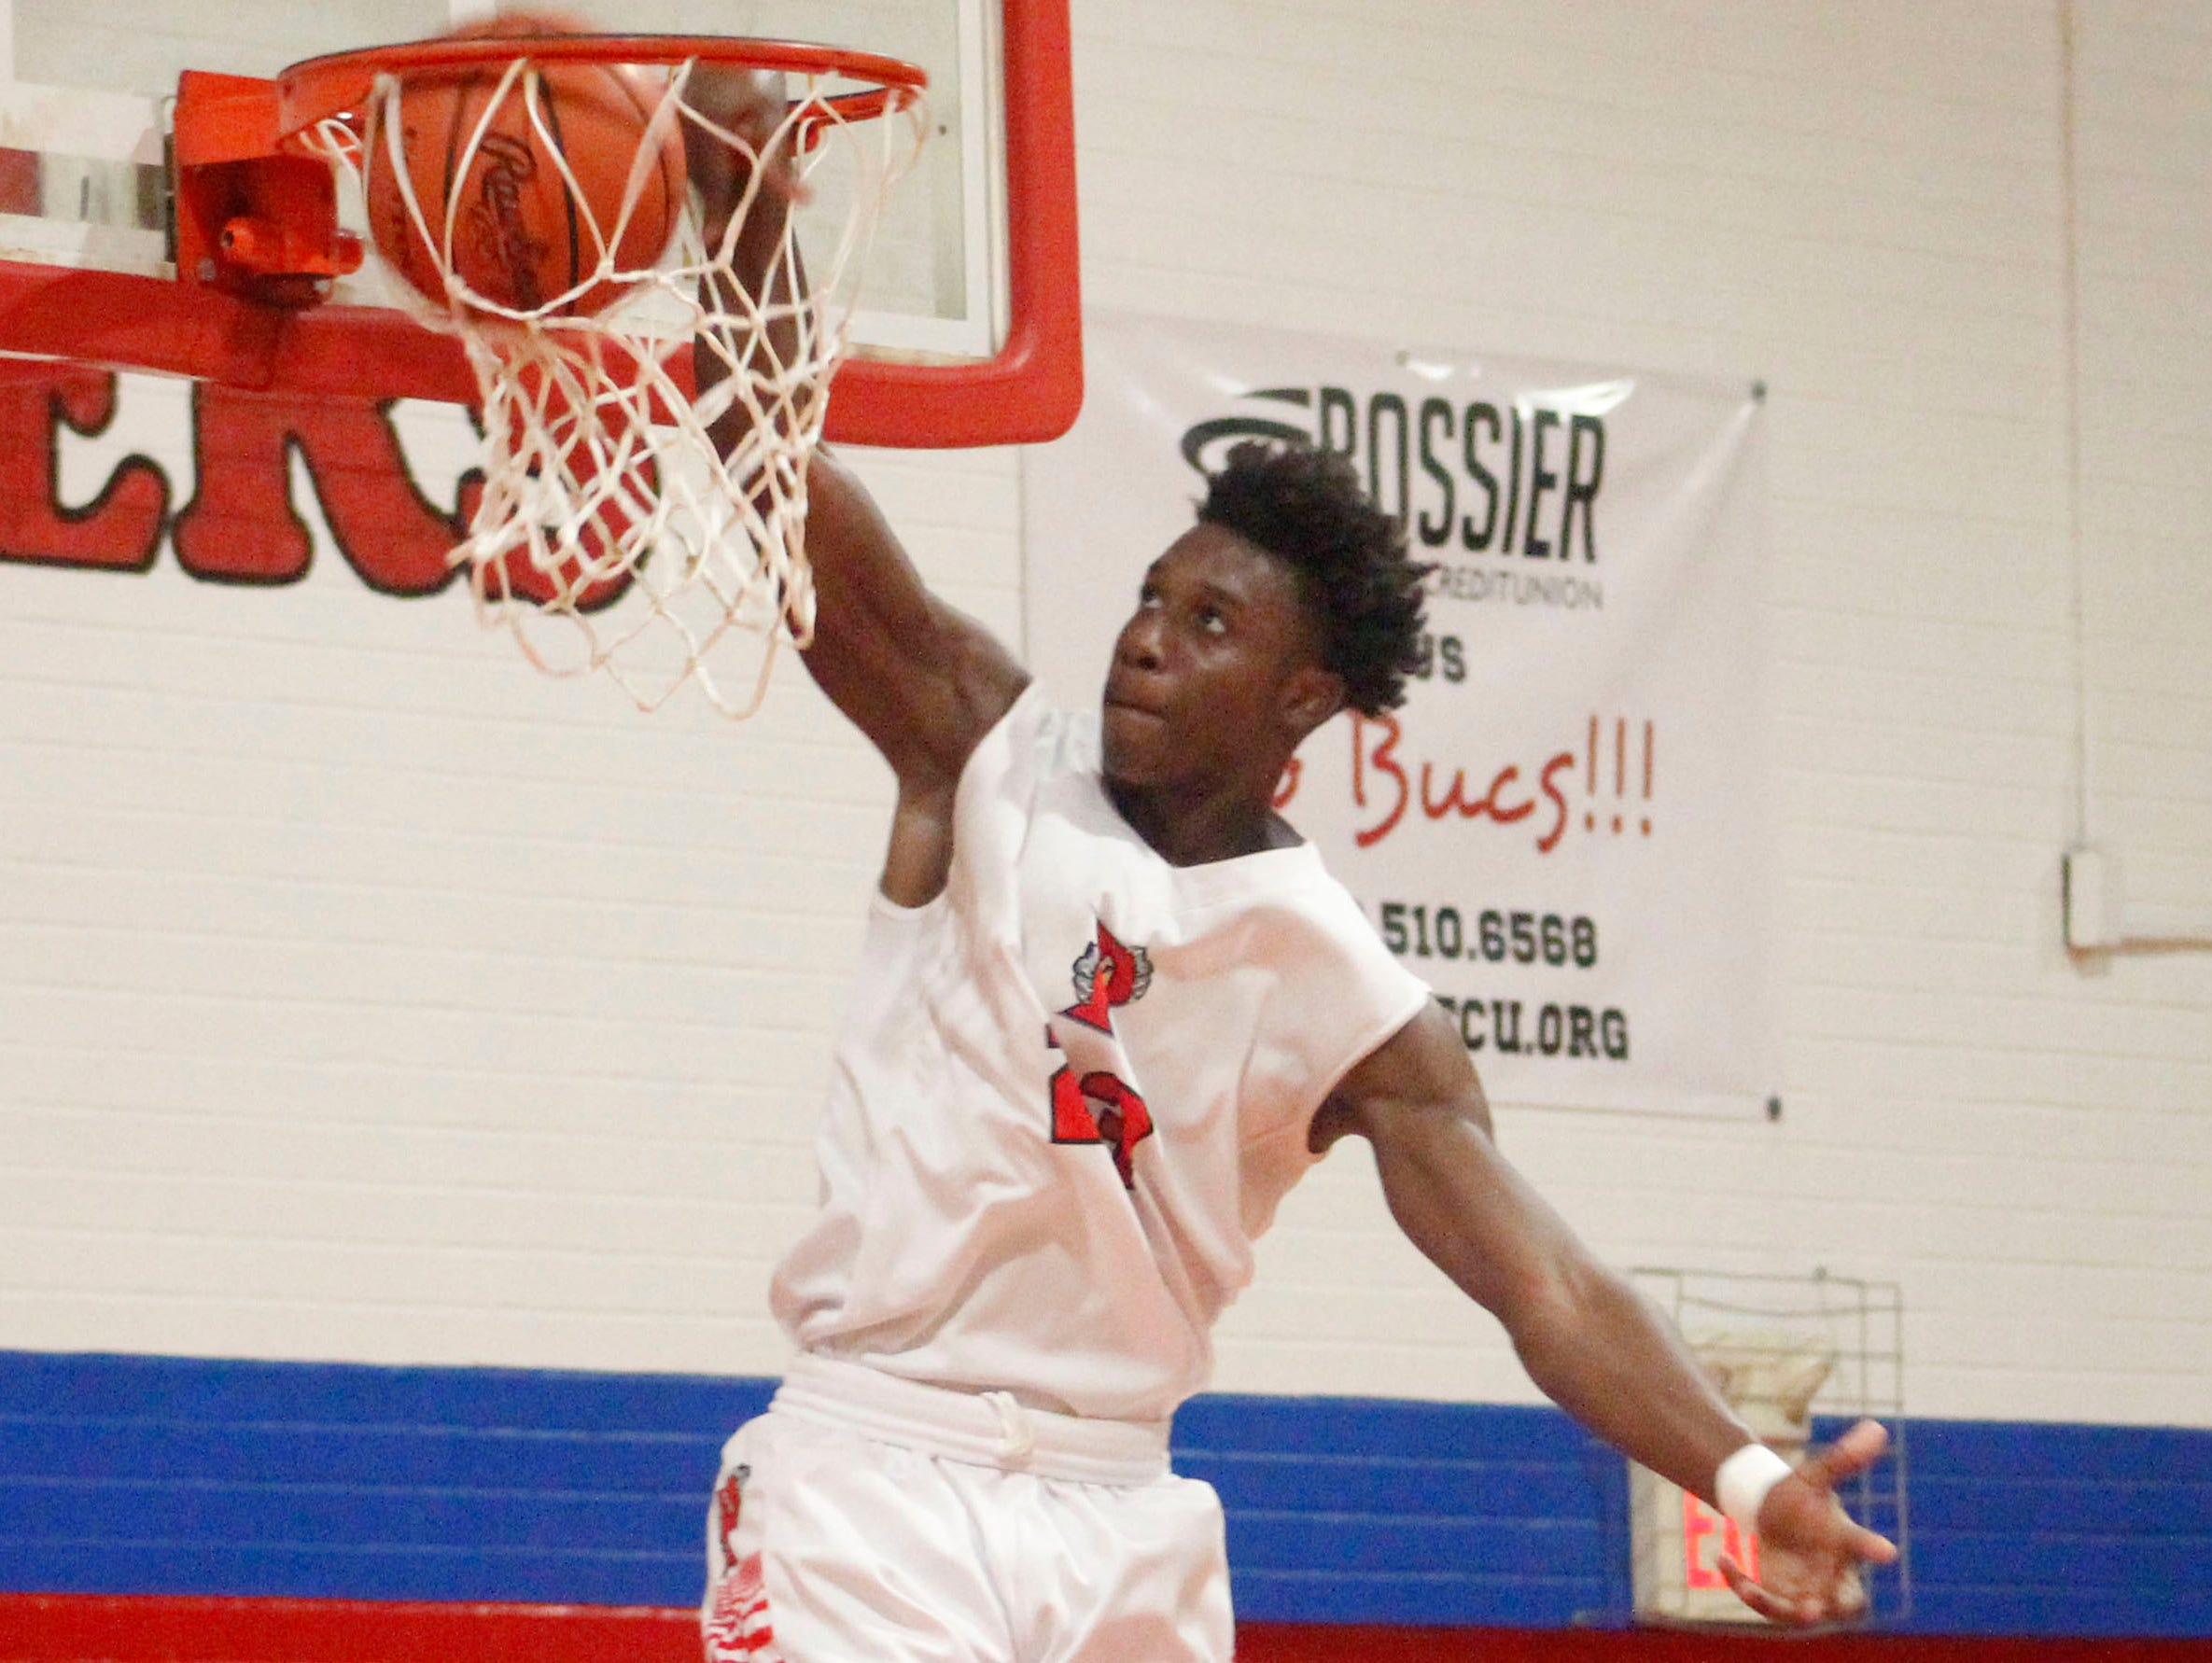 Terrace Marshall Jr.(23) dunks the ball after a fast break for Parkway High School against Byrd High school in the final boys basketball game during the Haughton Basketball Tournament on Saturday, December 3 in Haughton,LA.